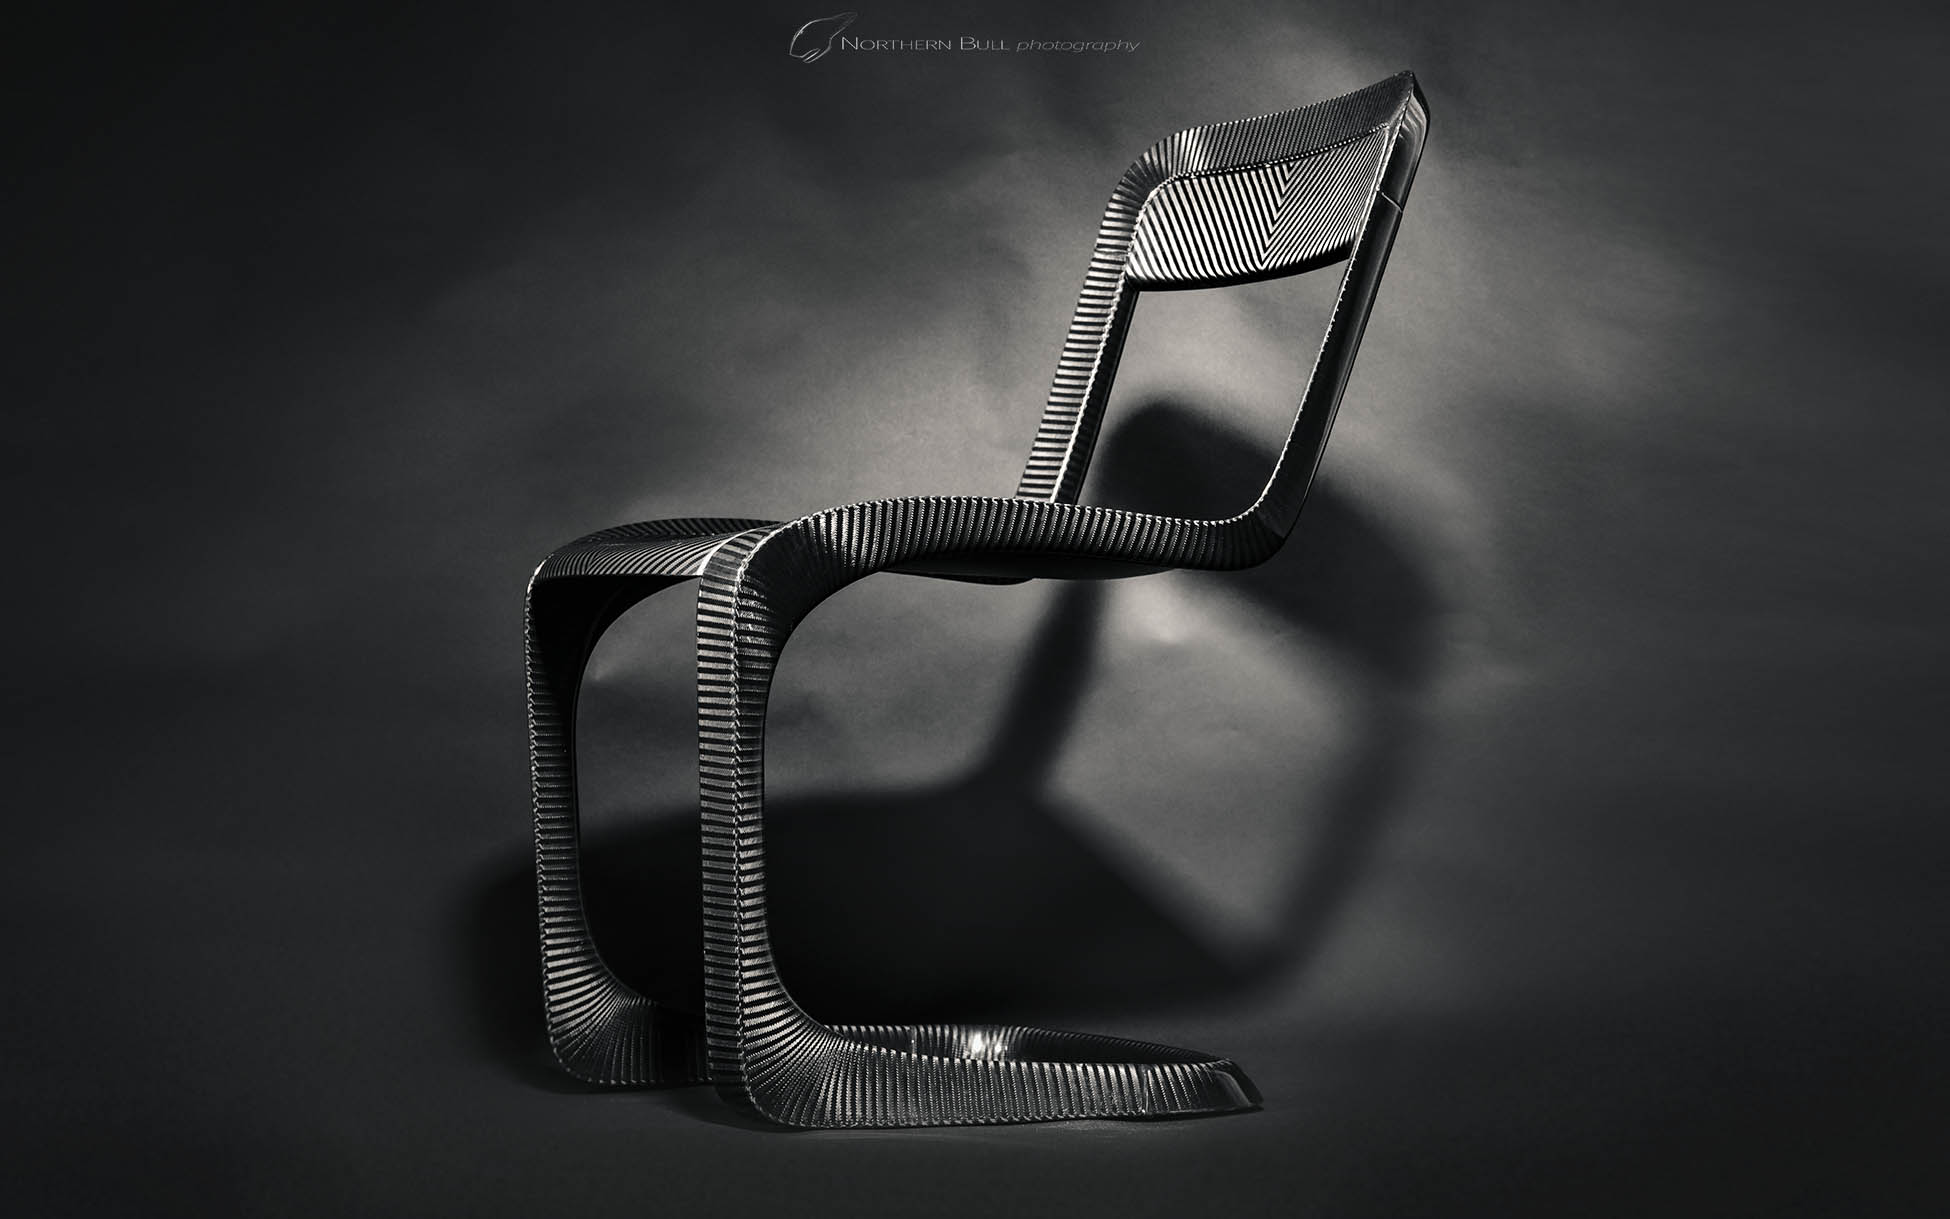 carbon_chair_by_norhtern_bull.jpg